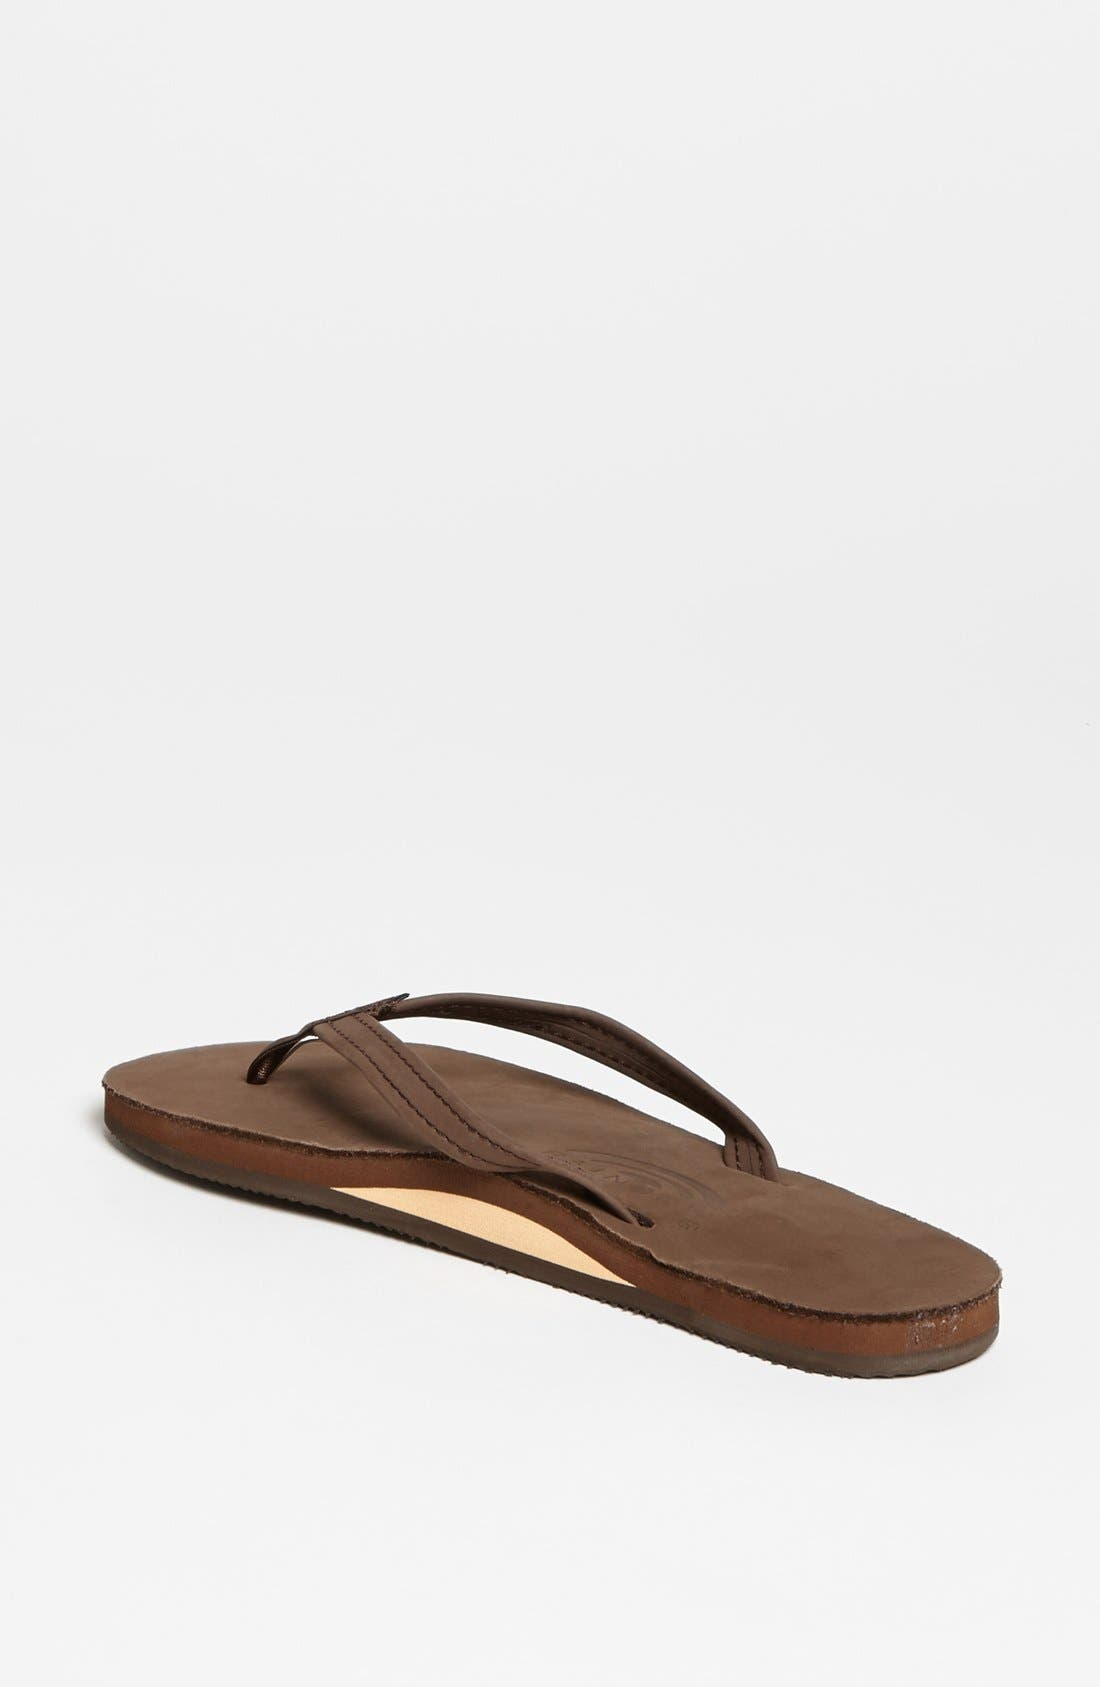 Narrow Strap Sandal,                             Alternate thumbnail 2, color,                             Expresso